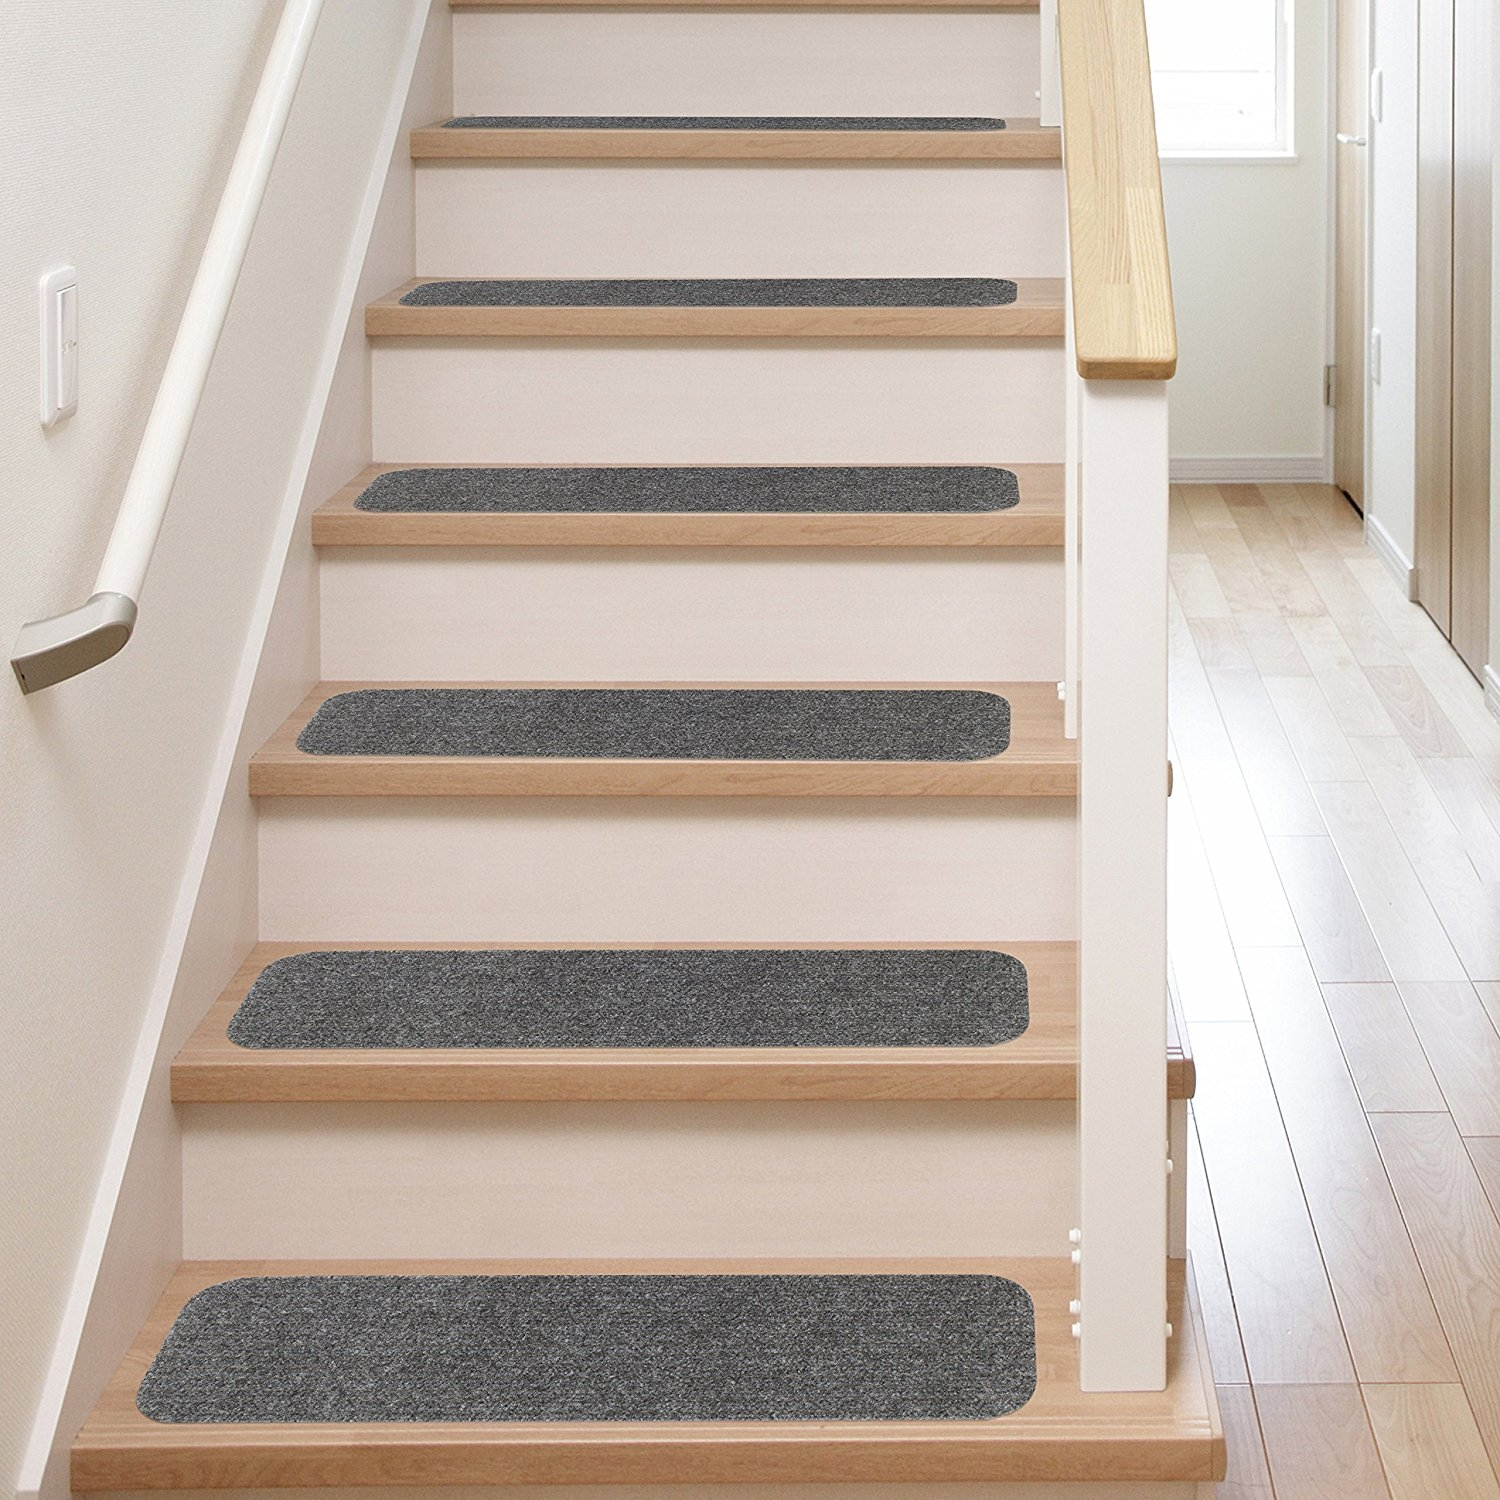 Staircase Step Treads Amazon Building Supplies Stair Parts In Stair Tread Rug Holders (Image 11 of 15)